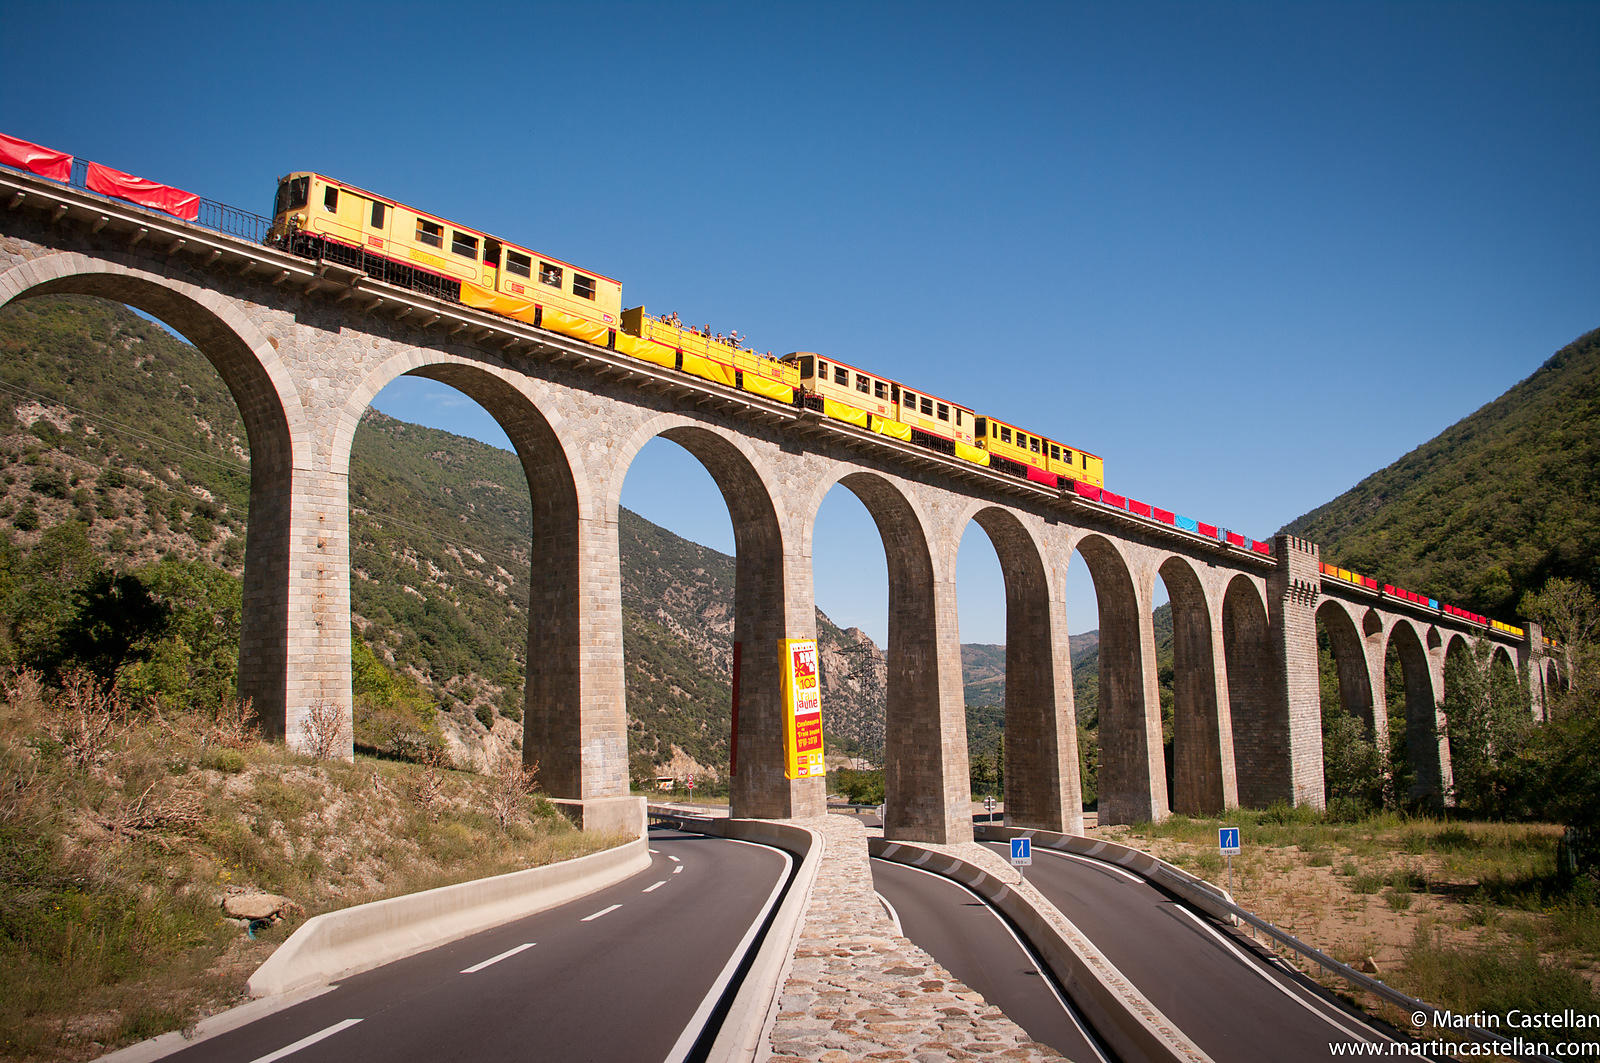 IGP5570: France, Pyrénées Orientales: The Train Jaune crosses the Pont Séjourné